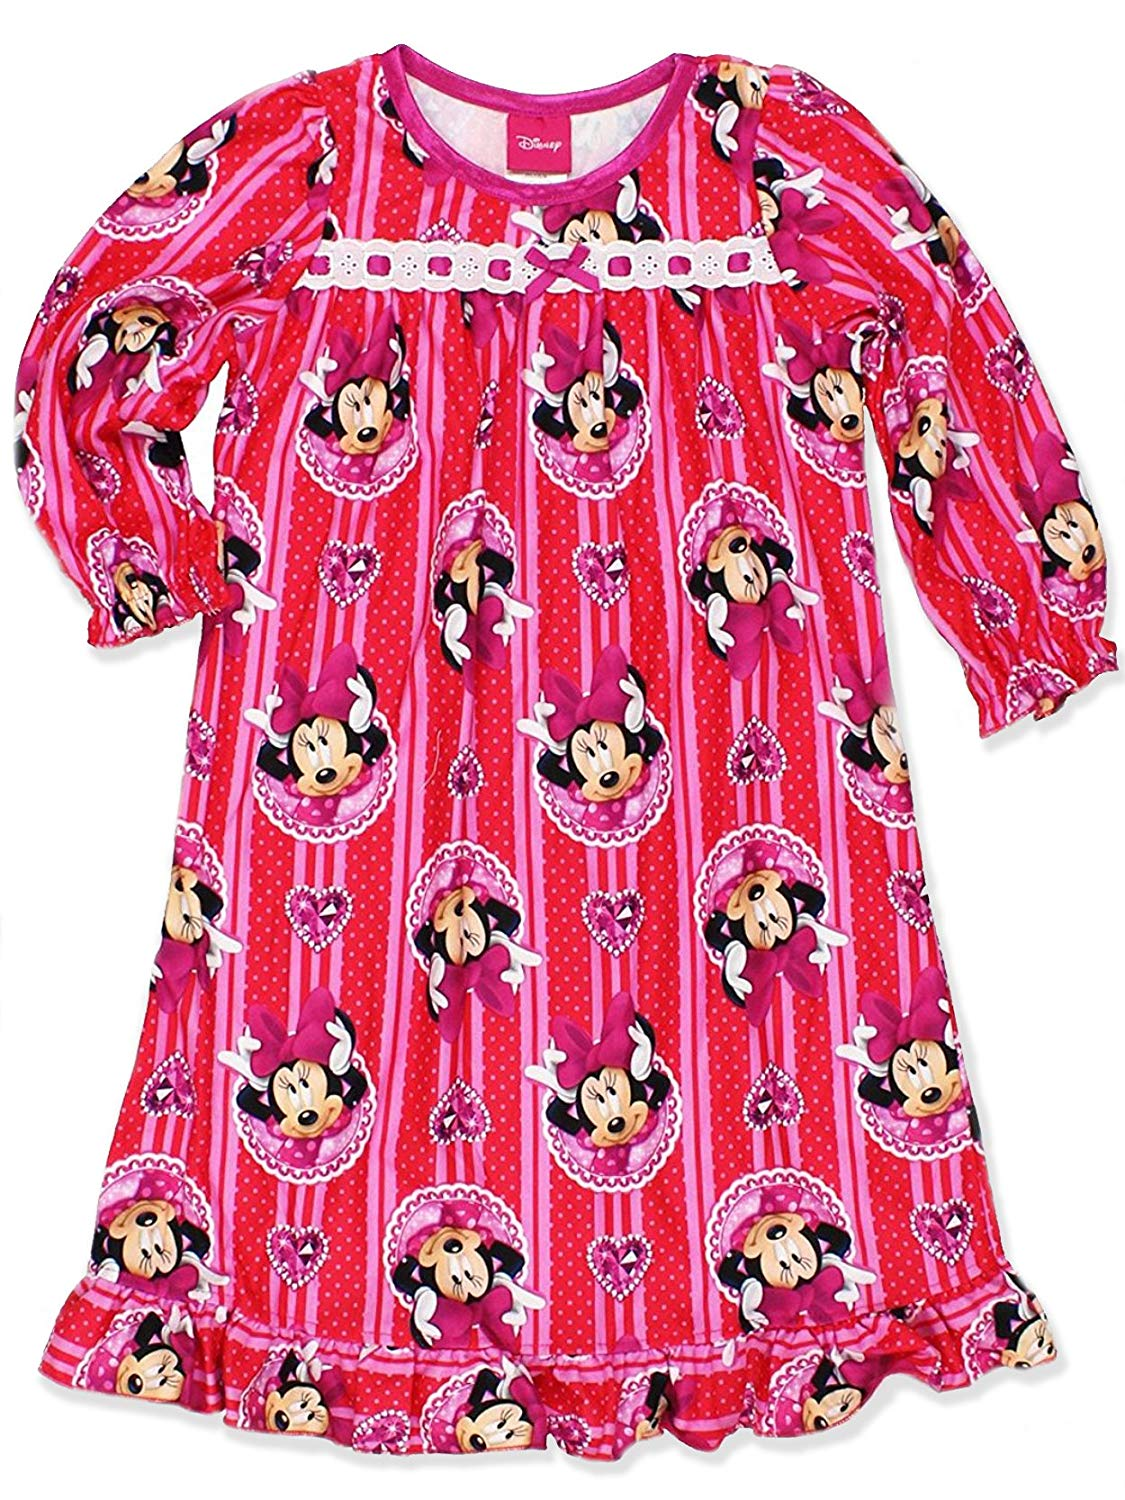 09b78e56d959 Disney Minnie Mouse Girls Flannel Granny Gown Nightgown (Toddler Little  Kid Big Kid